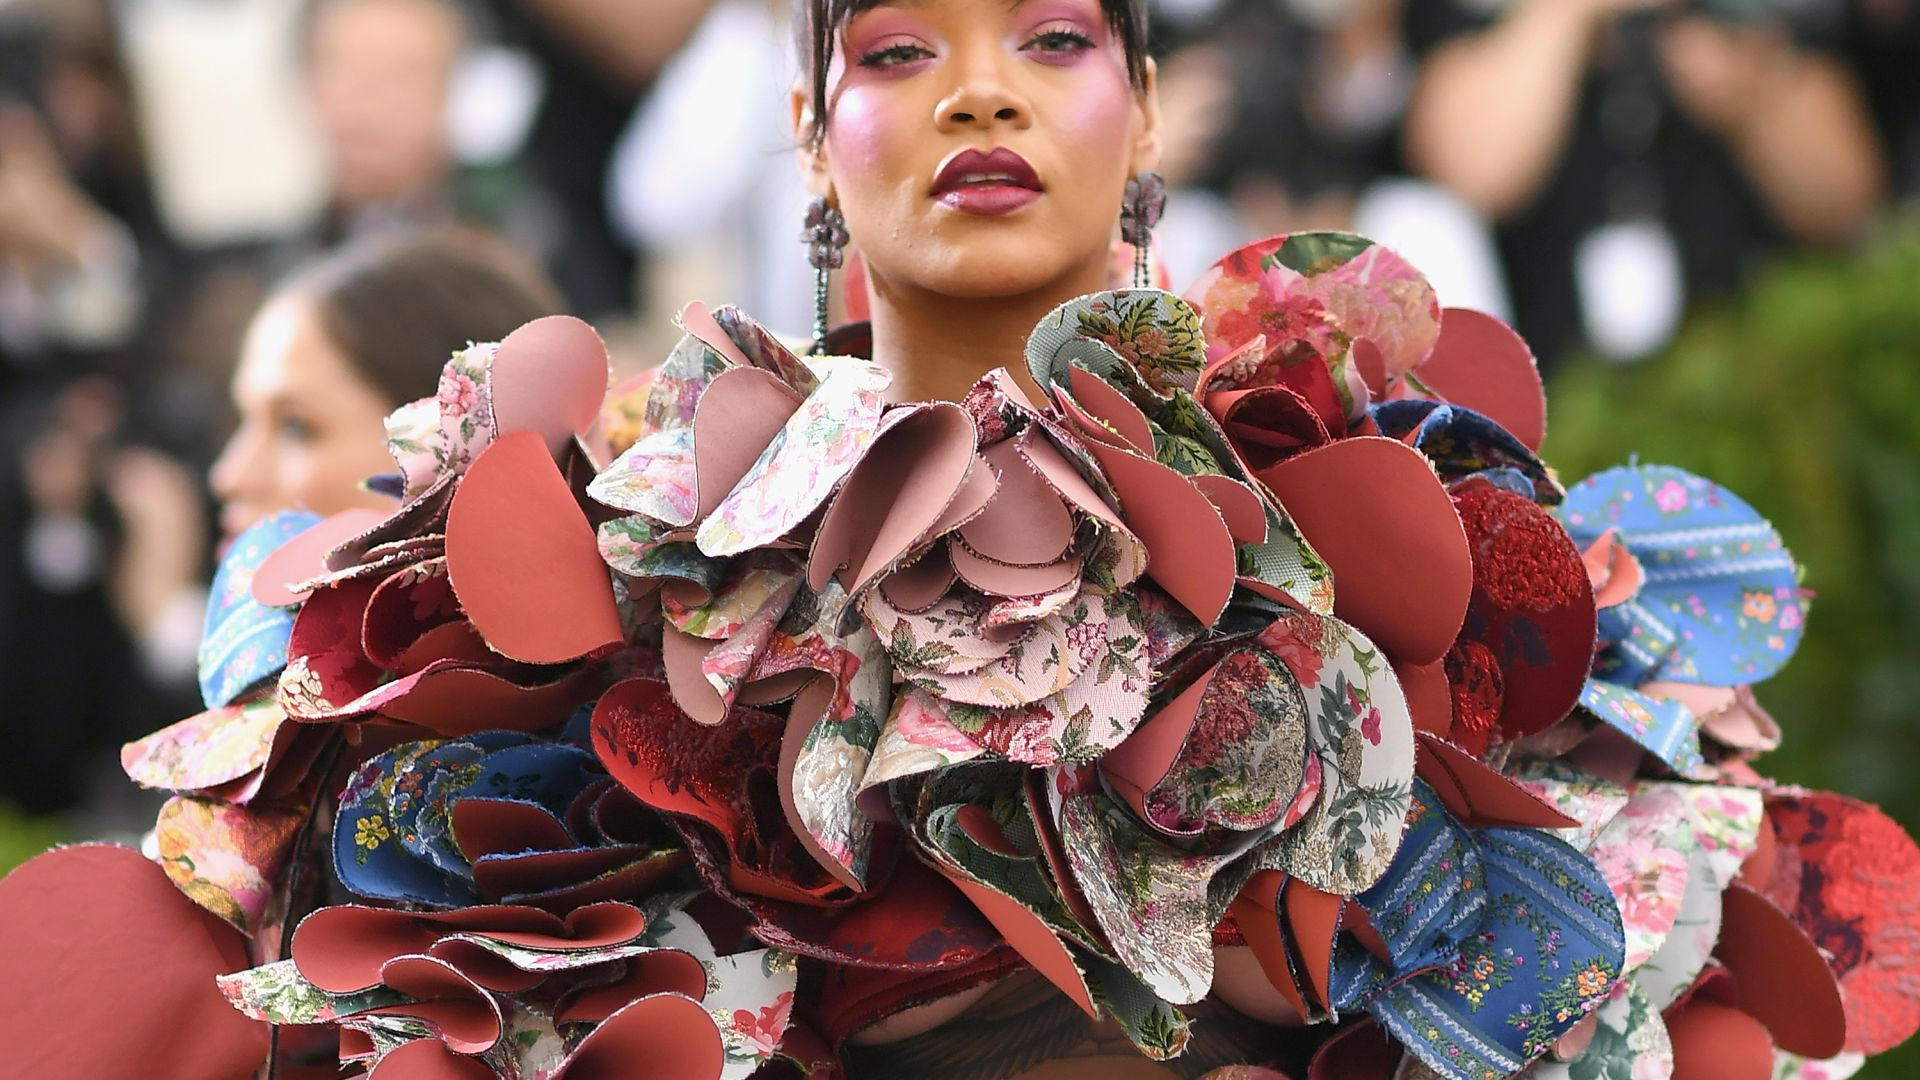 Рианна, Met Gala 2017, платье, красная дорожка, Rihanna, Met Gala 2017, dress, red carpet (horizontal)